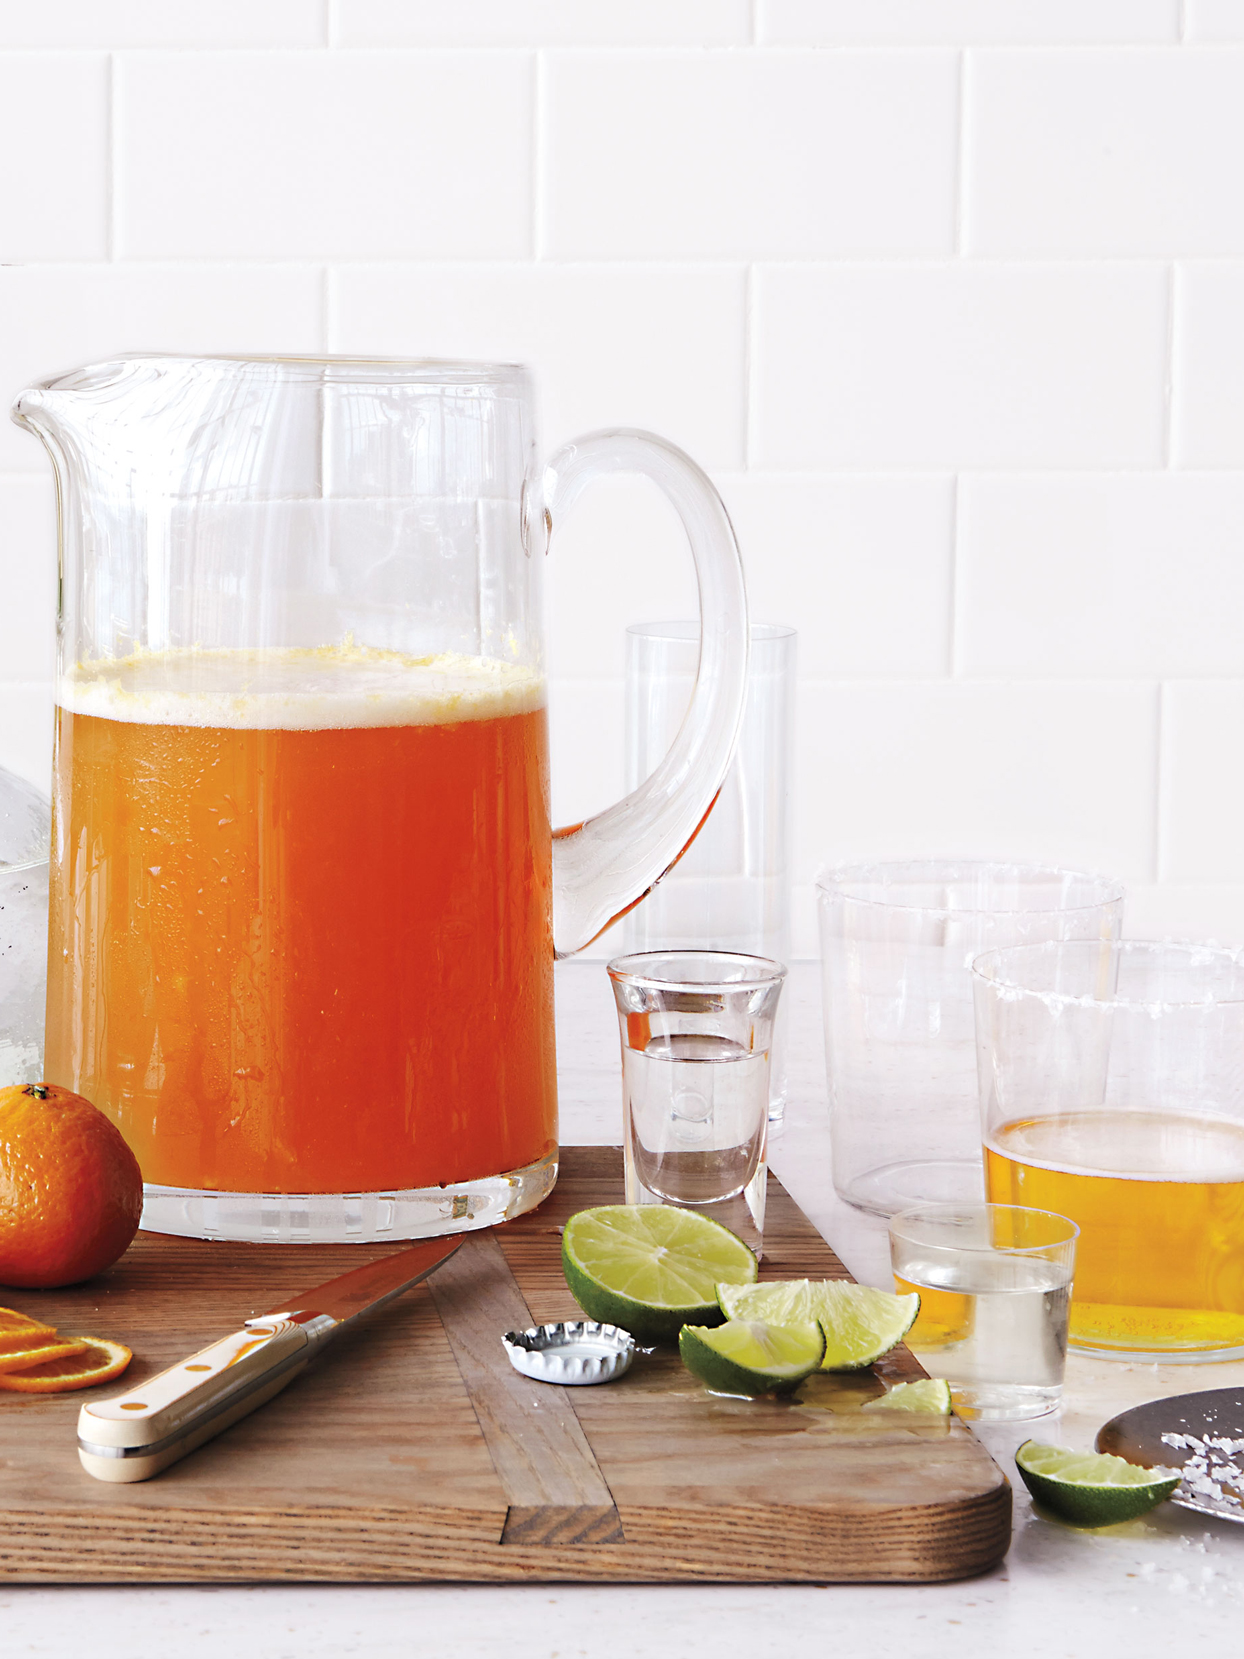 pitcher of beer shot glass and sliced limes atop cutting board